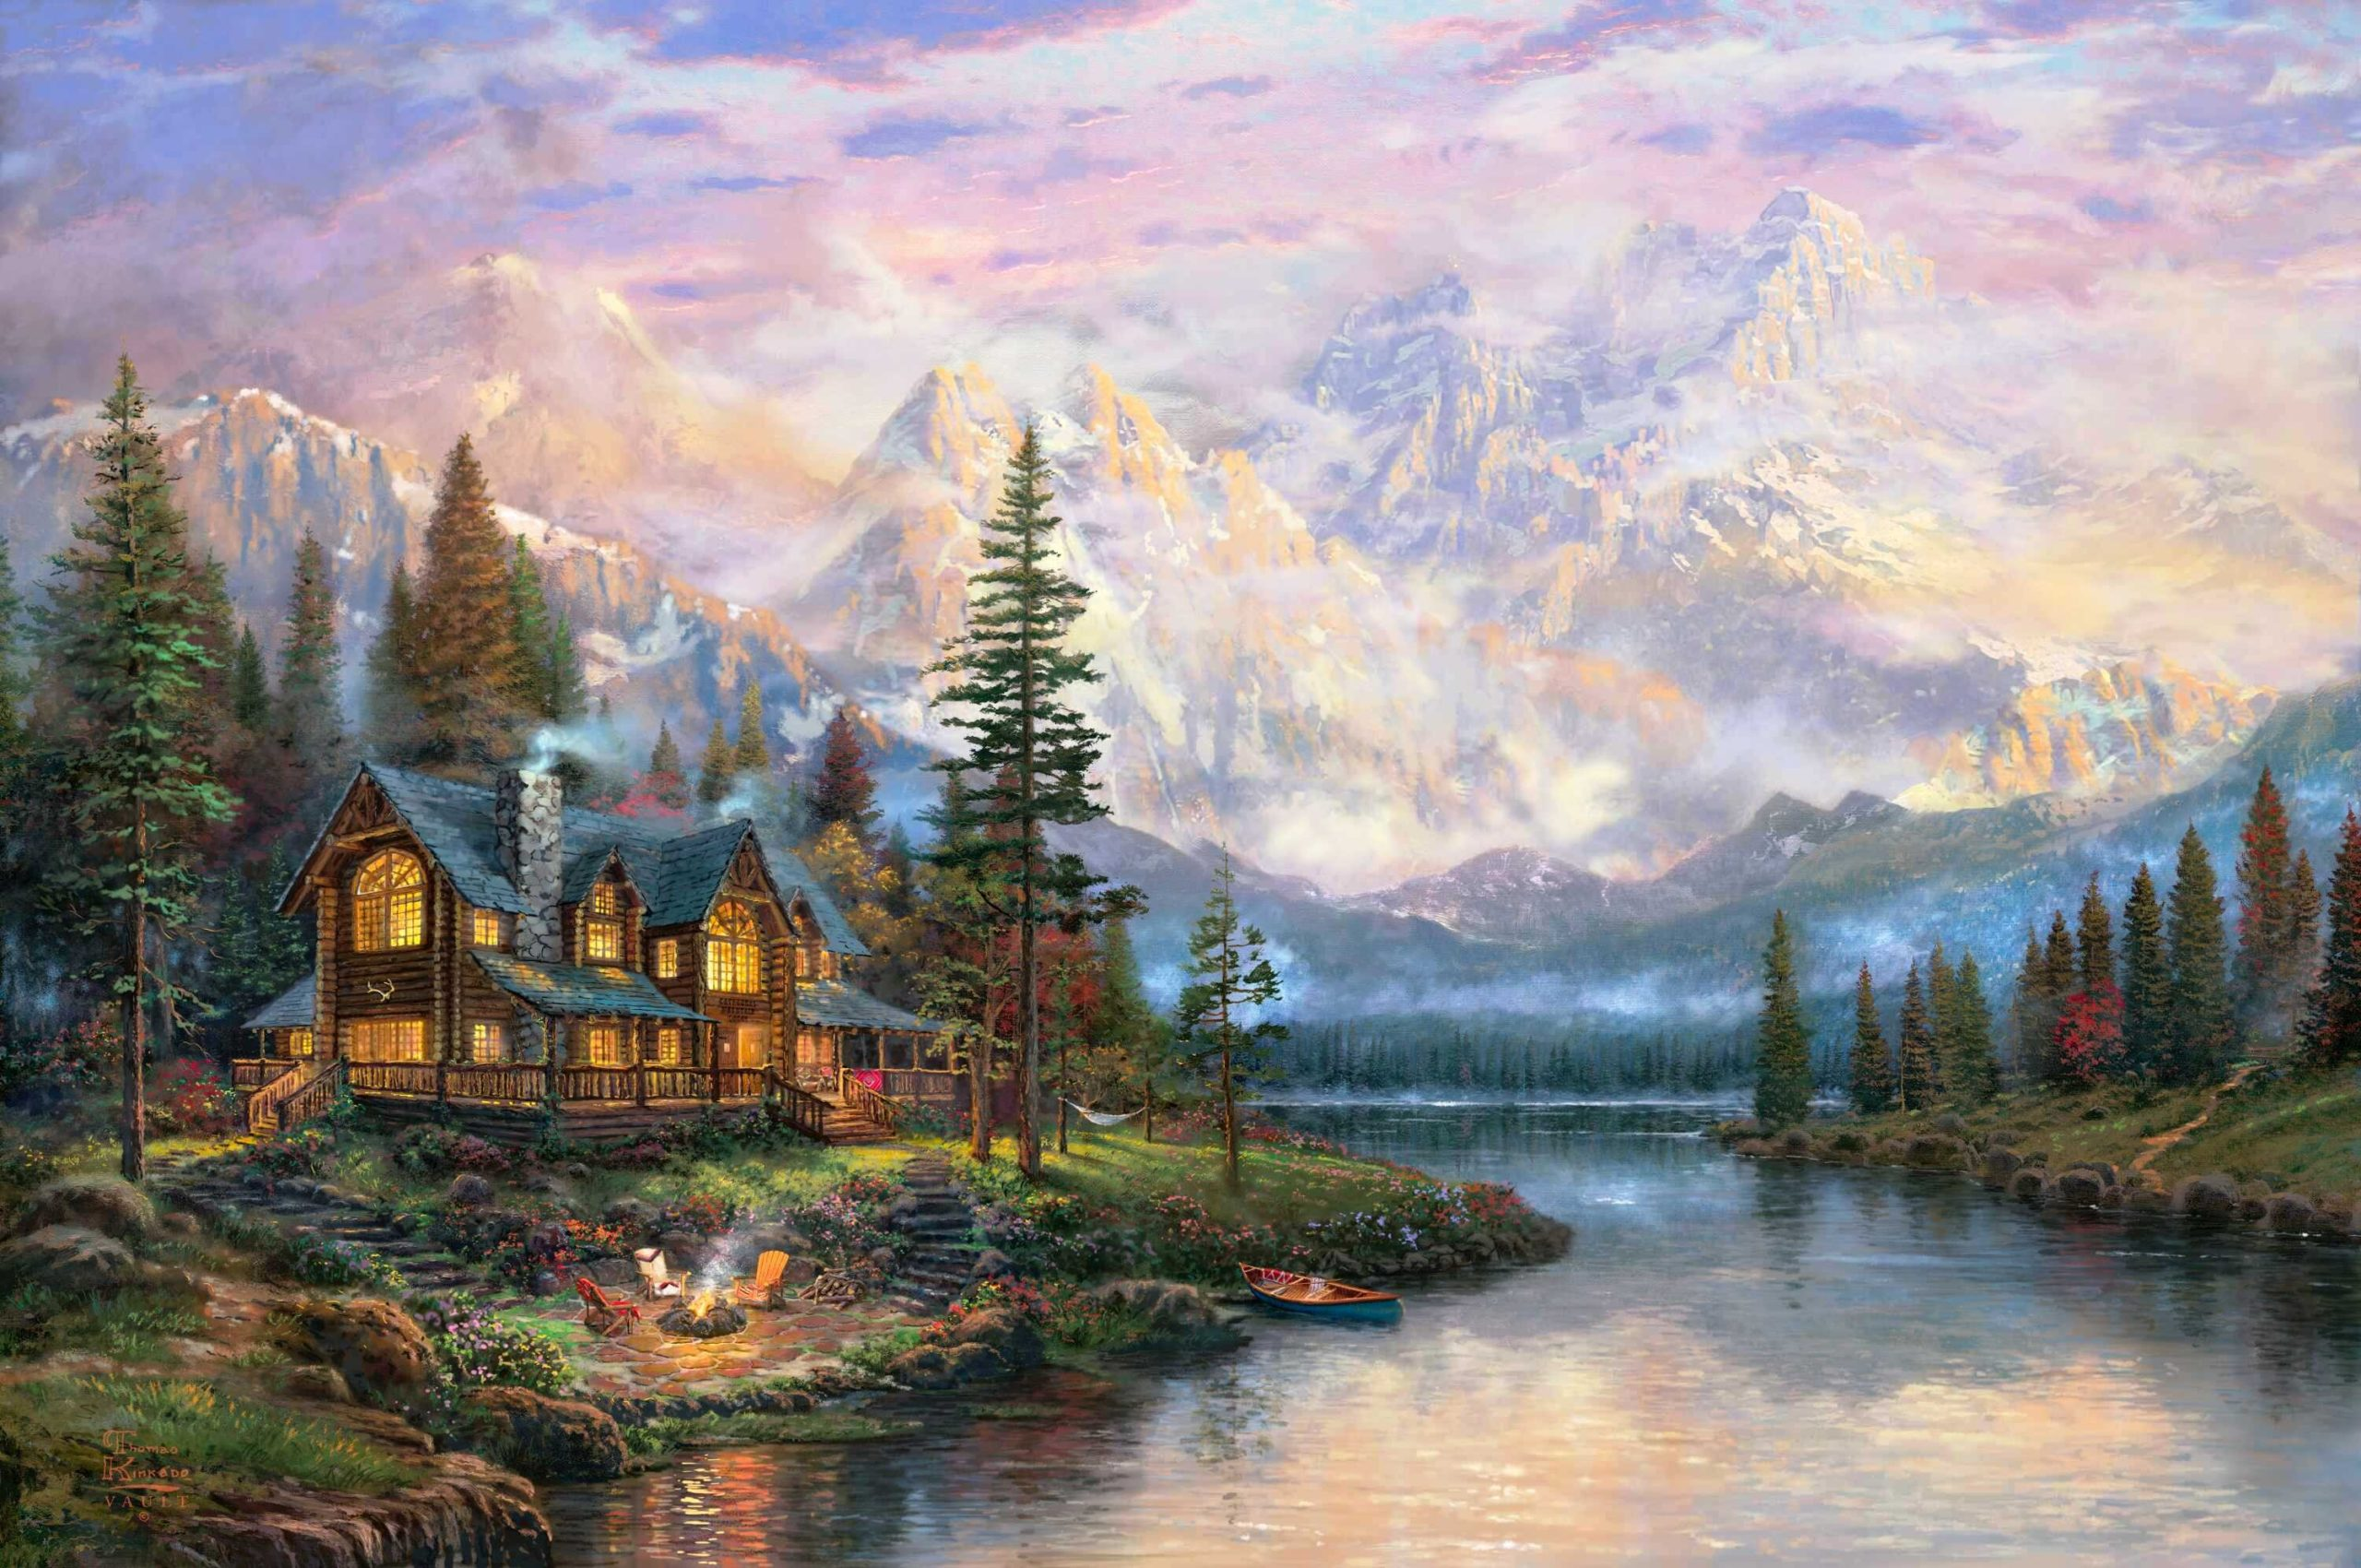 painting hd wallpapers